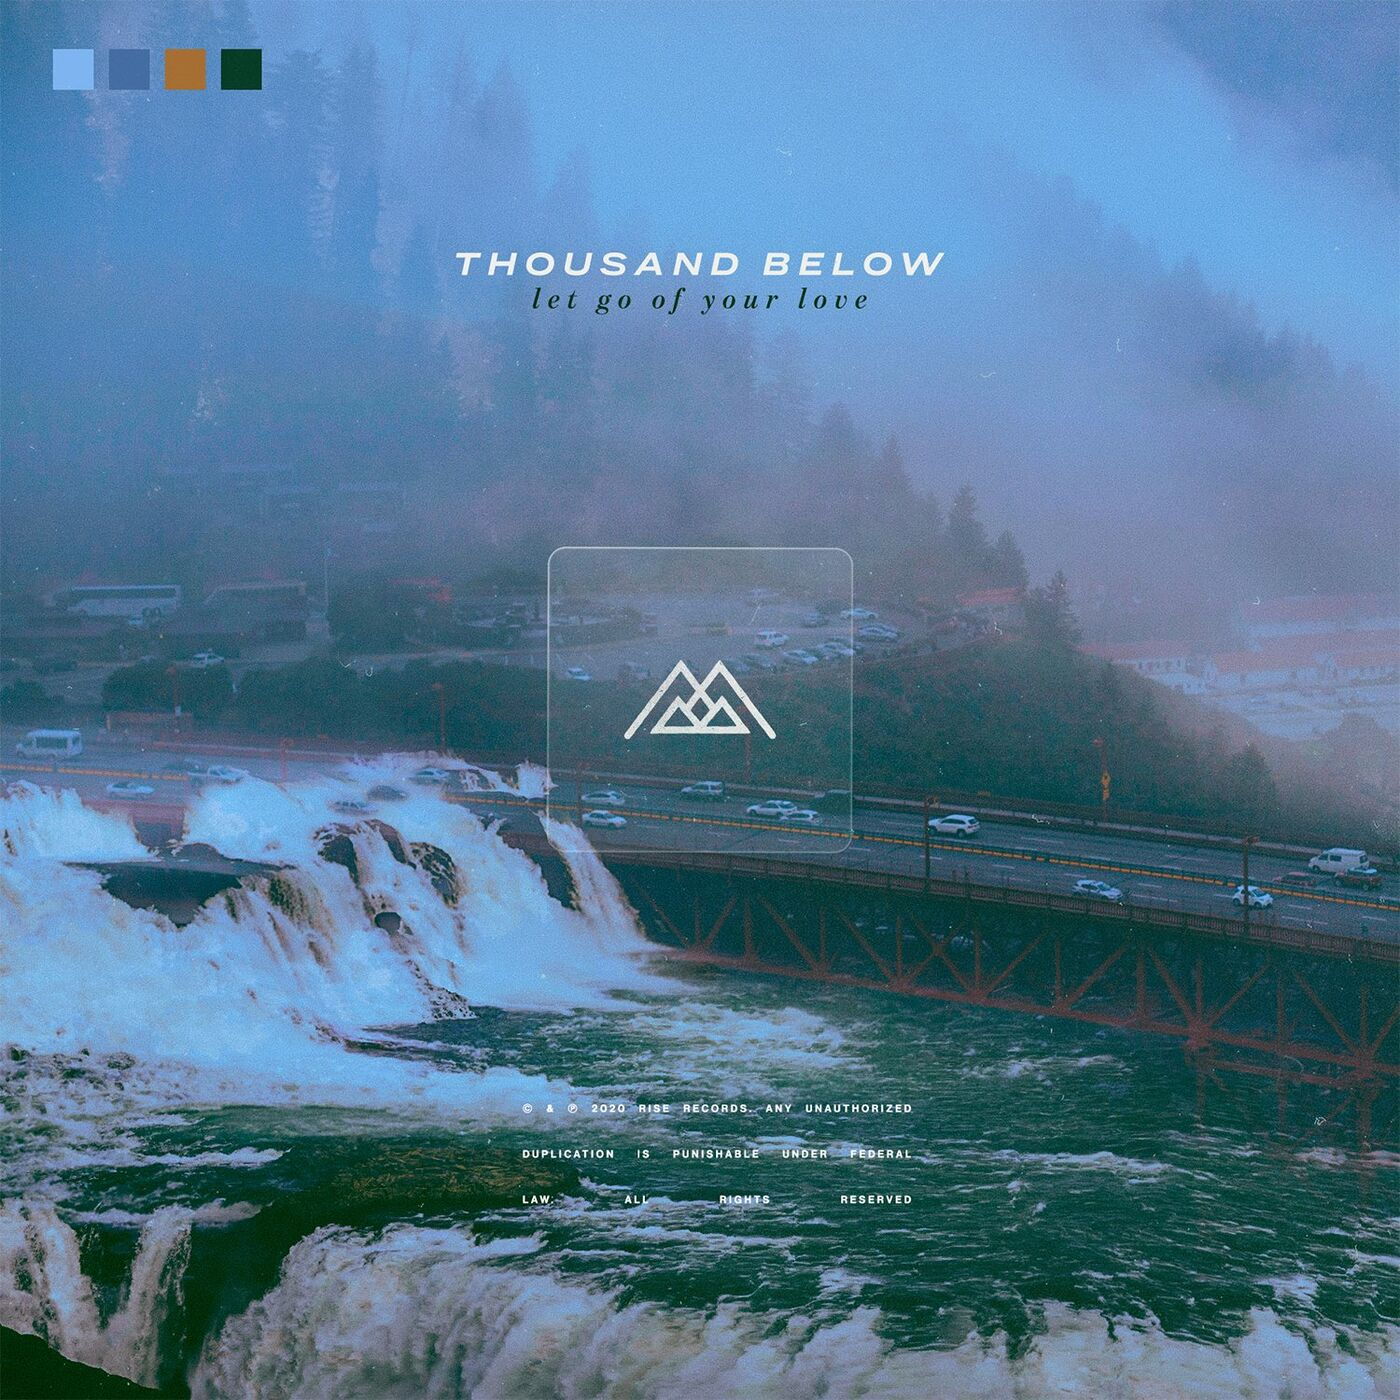 Thousand Below - let go of your love [single] (2020)